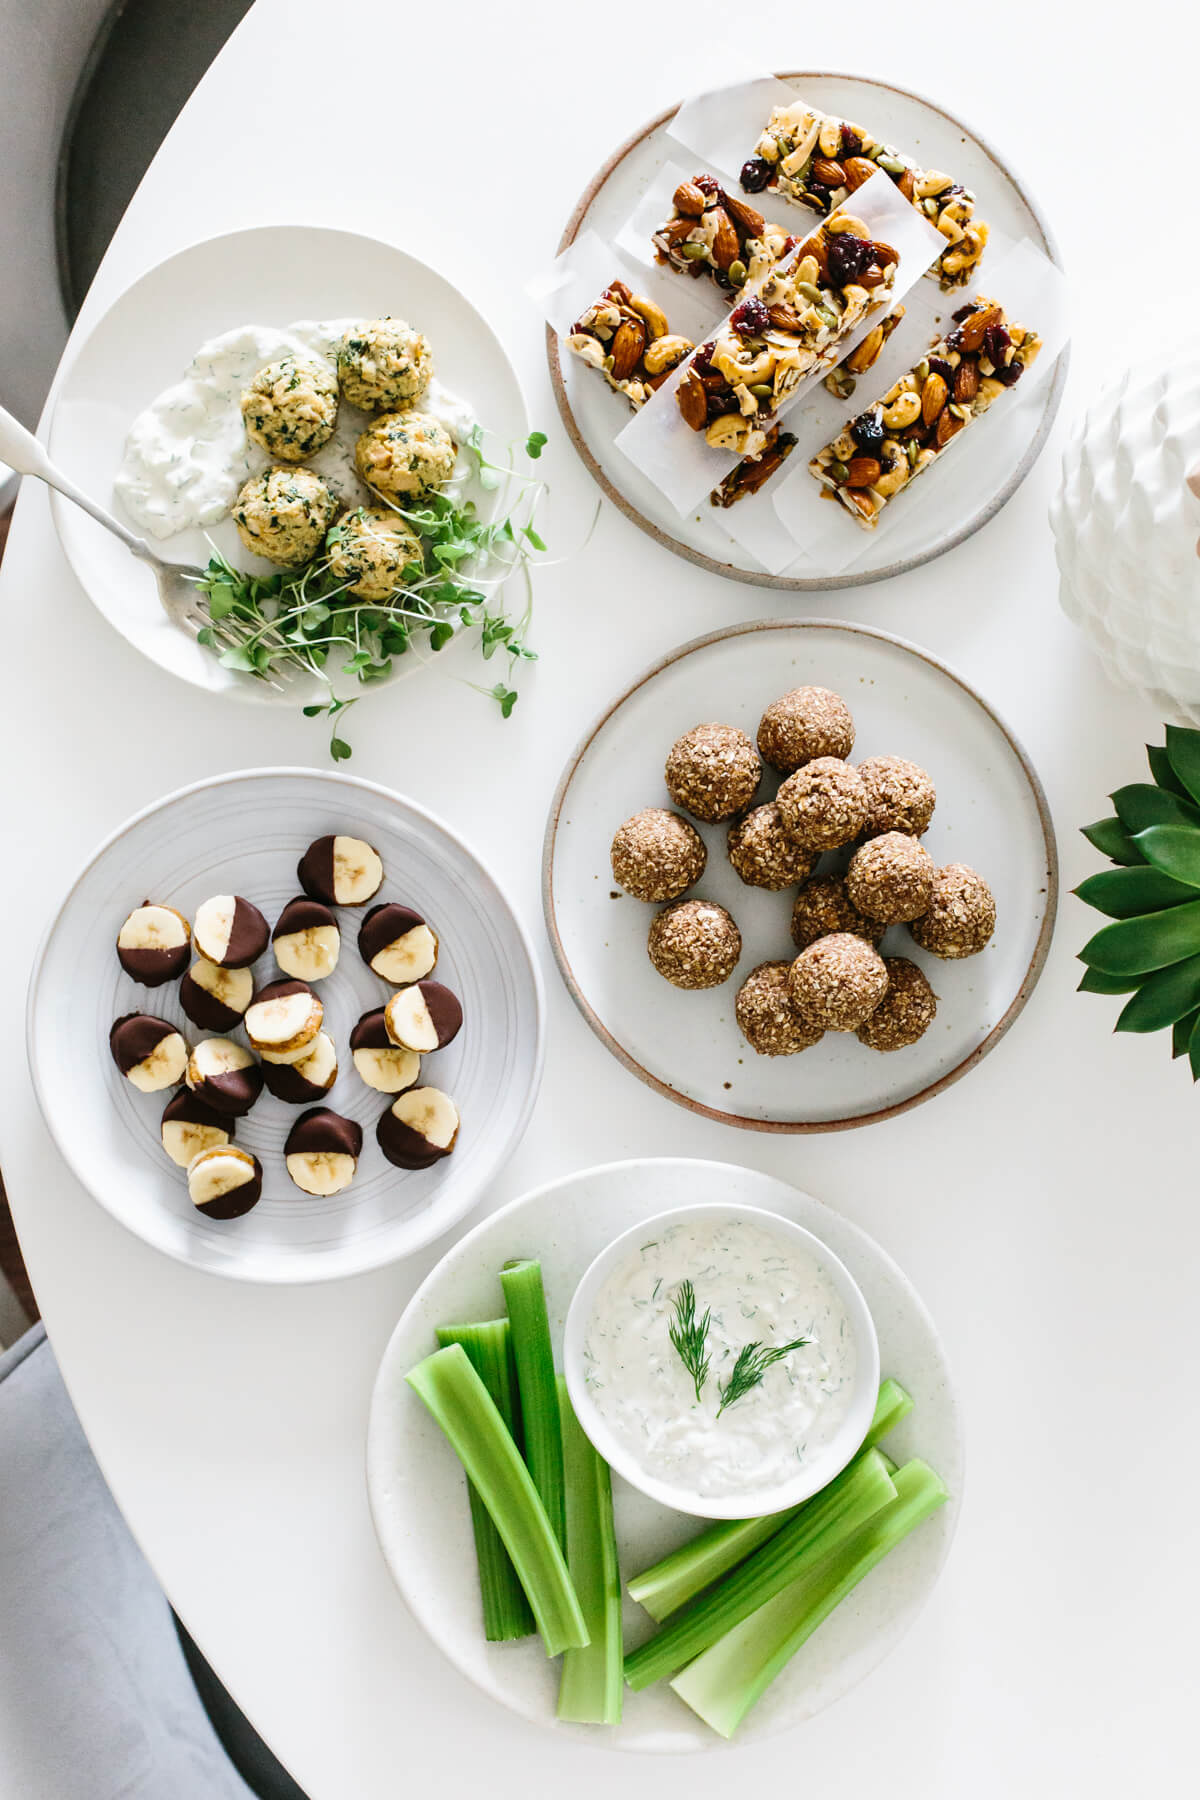 Several healthy snacks and ideas on separate plates on a table.